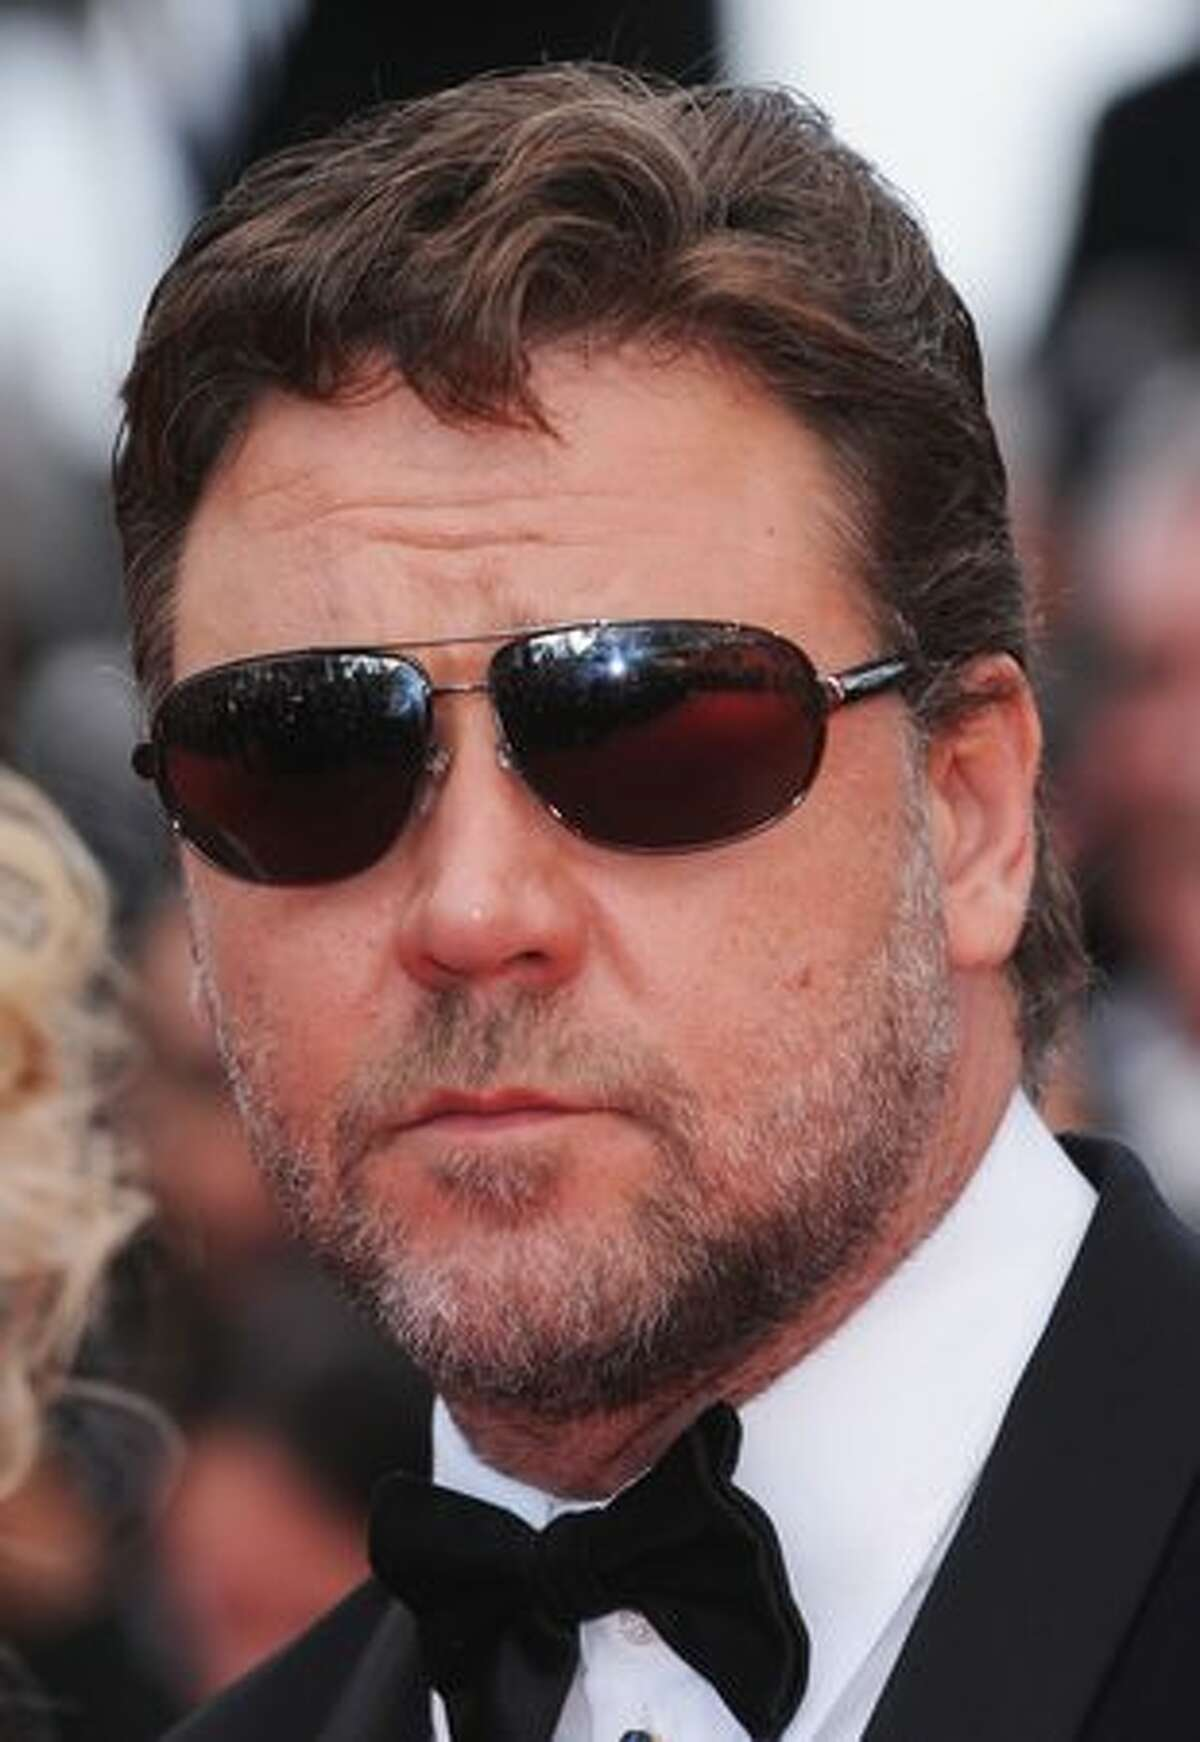 Actor Russell Crowe attends the 'Robin Hood' premiere during the 63rd Annual Cannes Film Festival in Cannes, France.